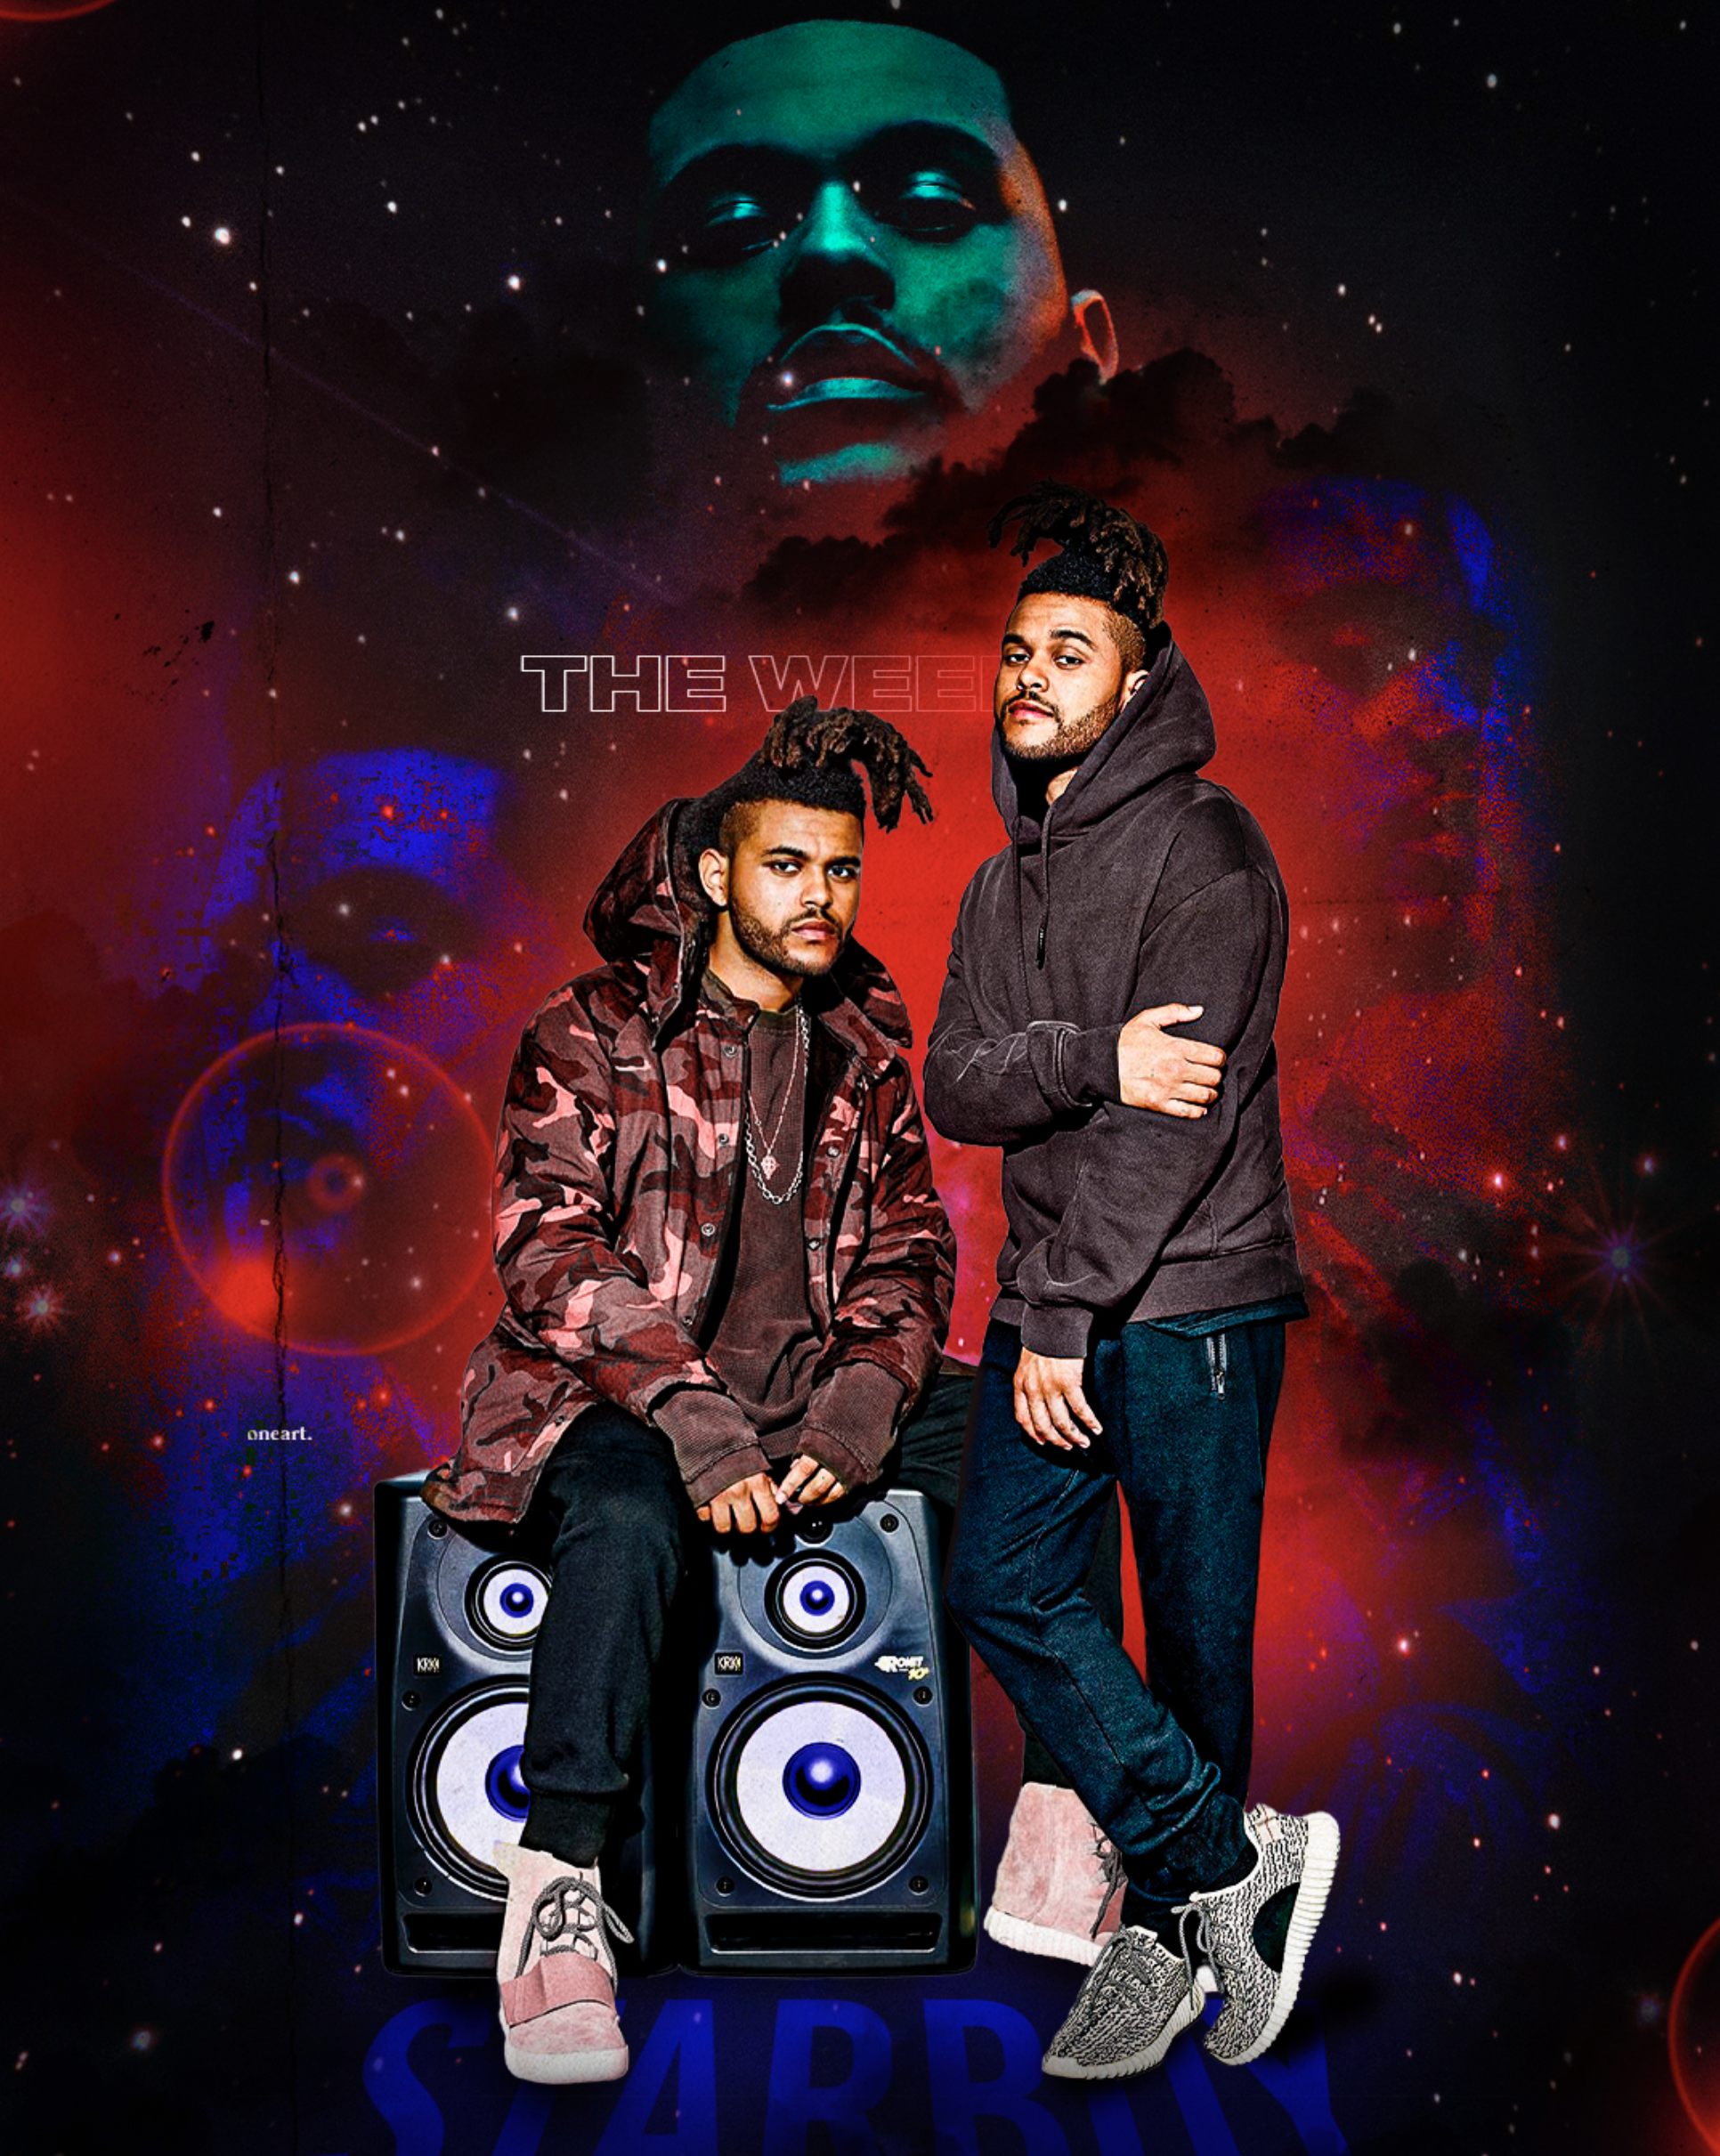 THE WEEKND X ONEART